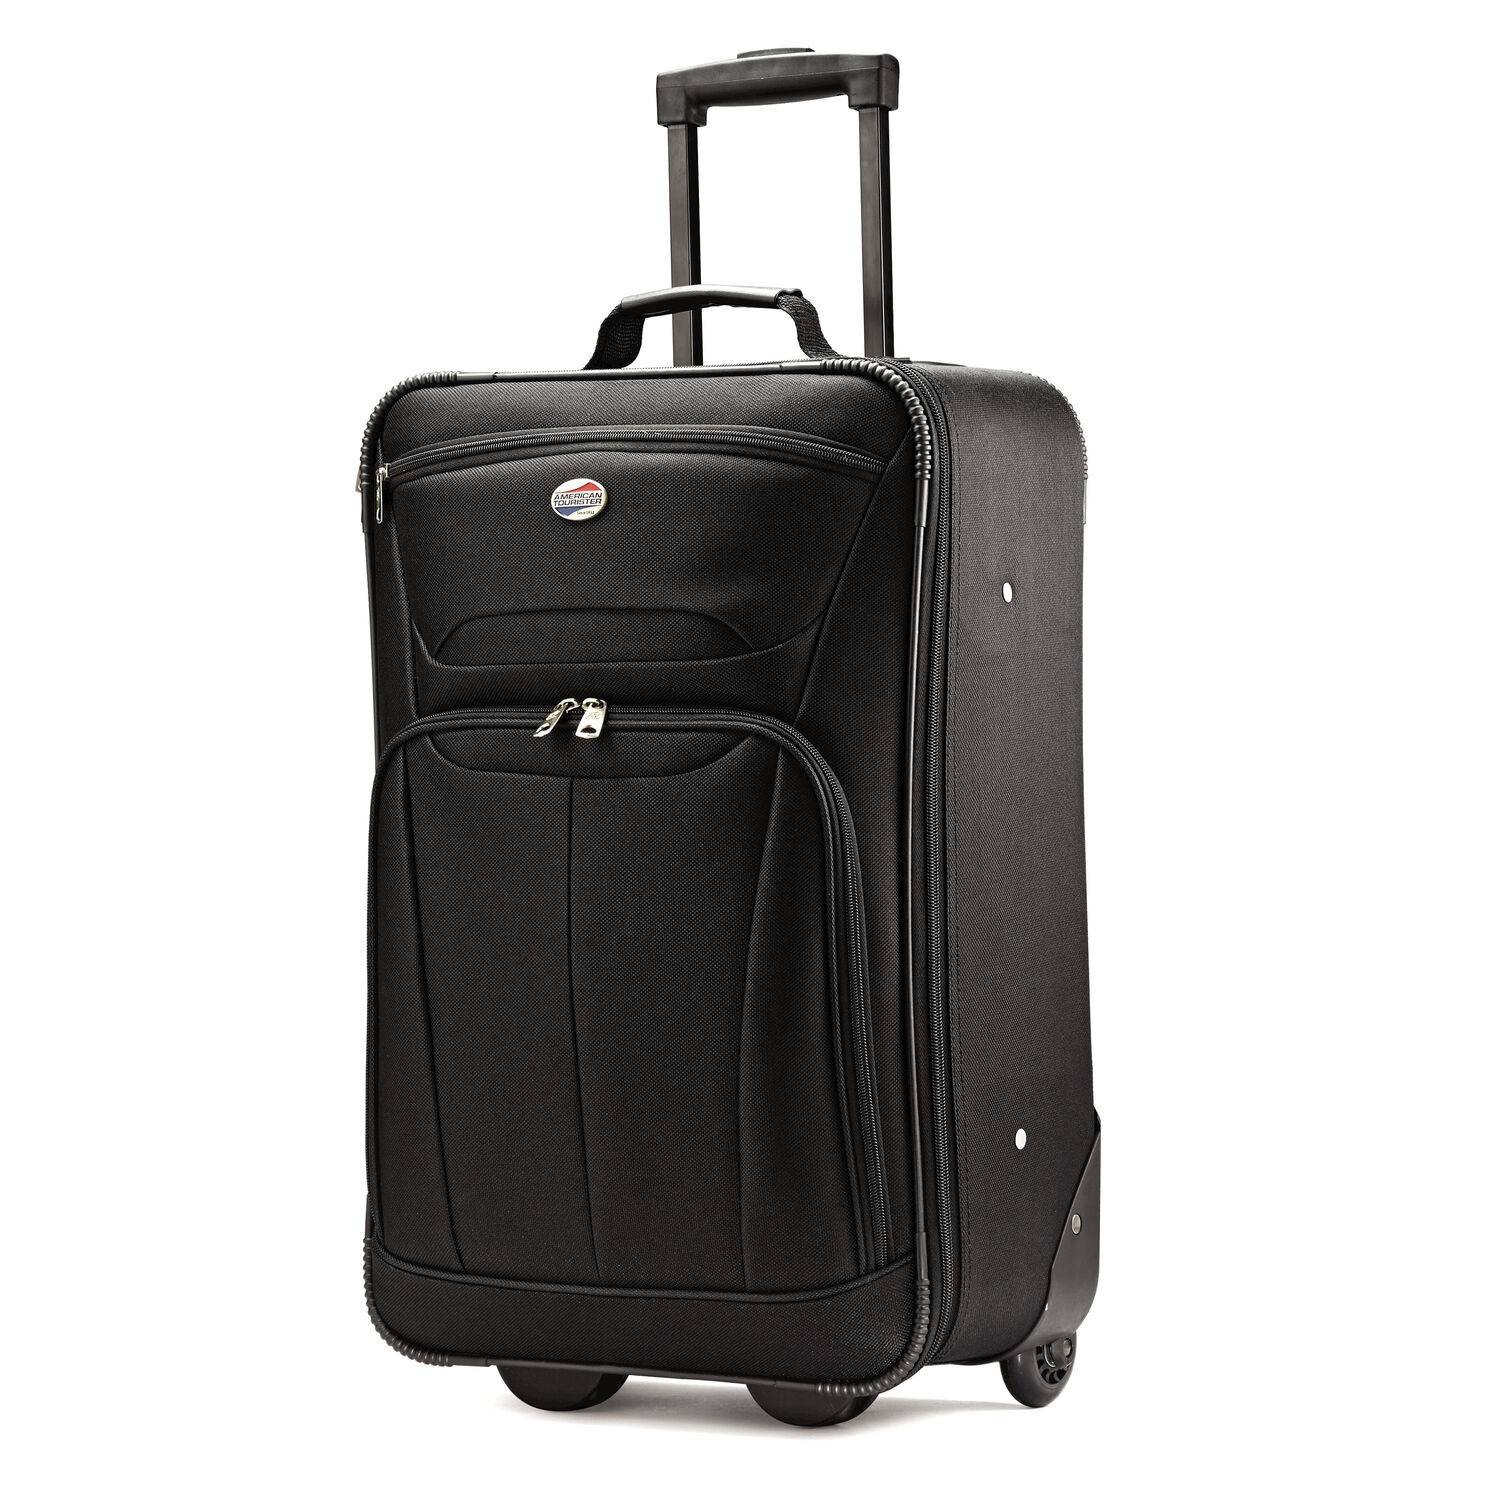 ac9bb8bc5 Play American Tourister Fieldbrook II Luggage Collection; American  Tourister Fieldbrook II 2 Piece Set in the color Black.